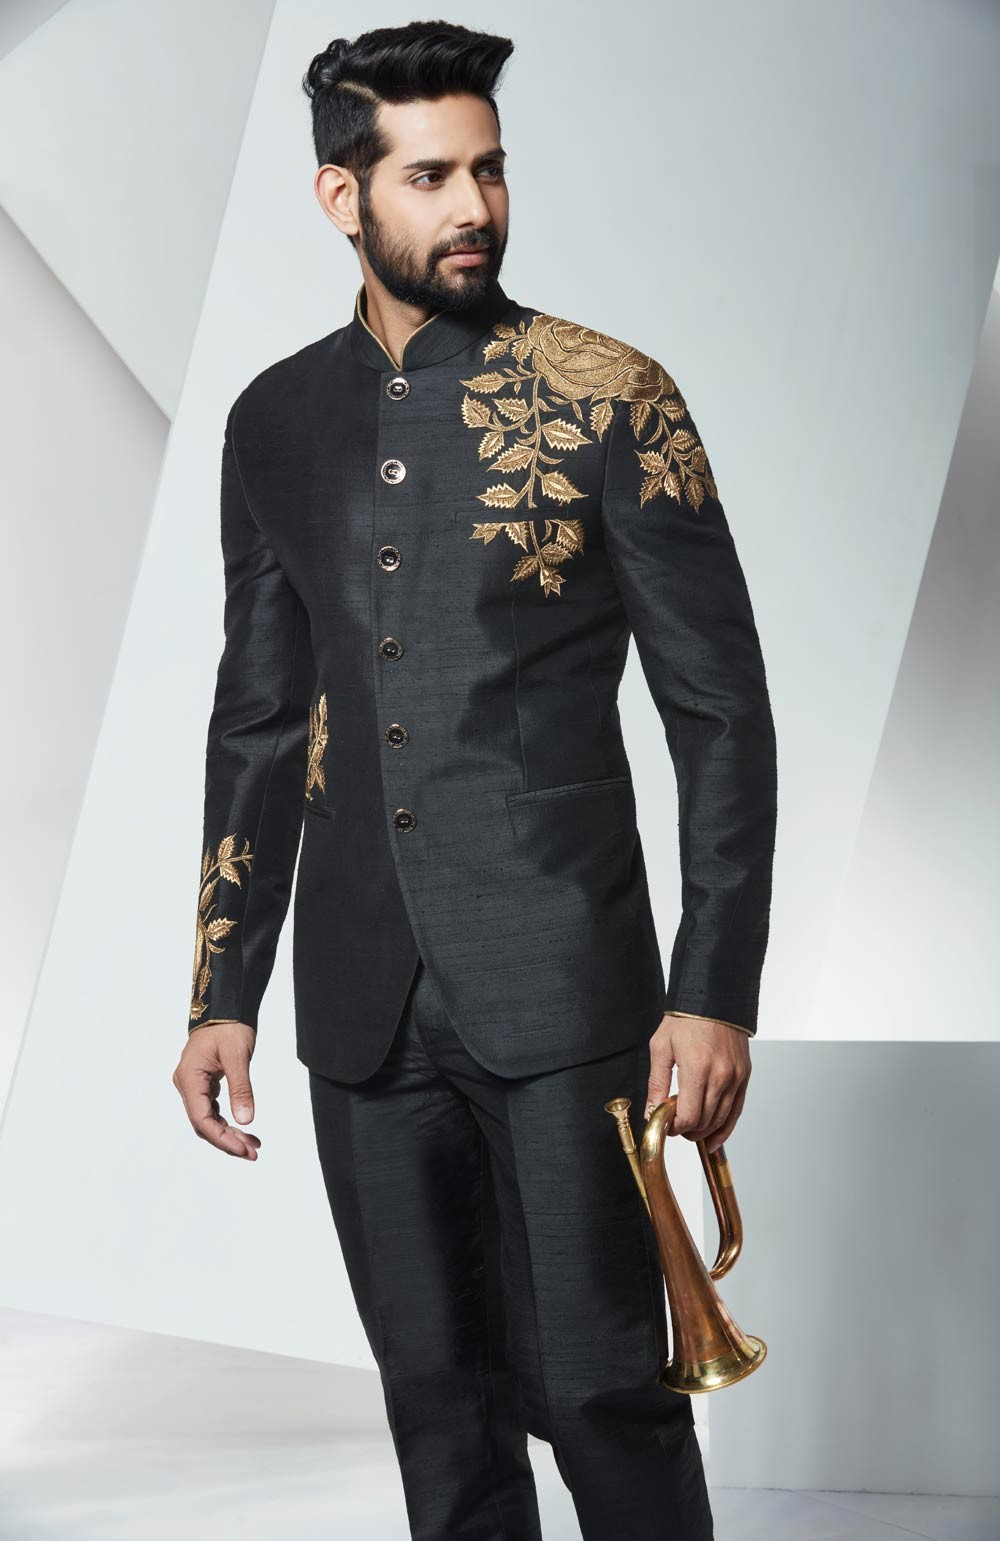 Best Wedding Suits for Men in Graceful Black Jodhpuri Suit